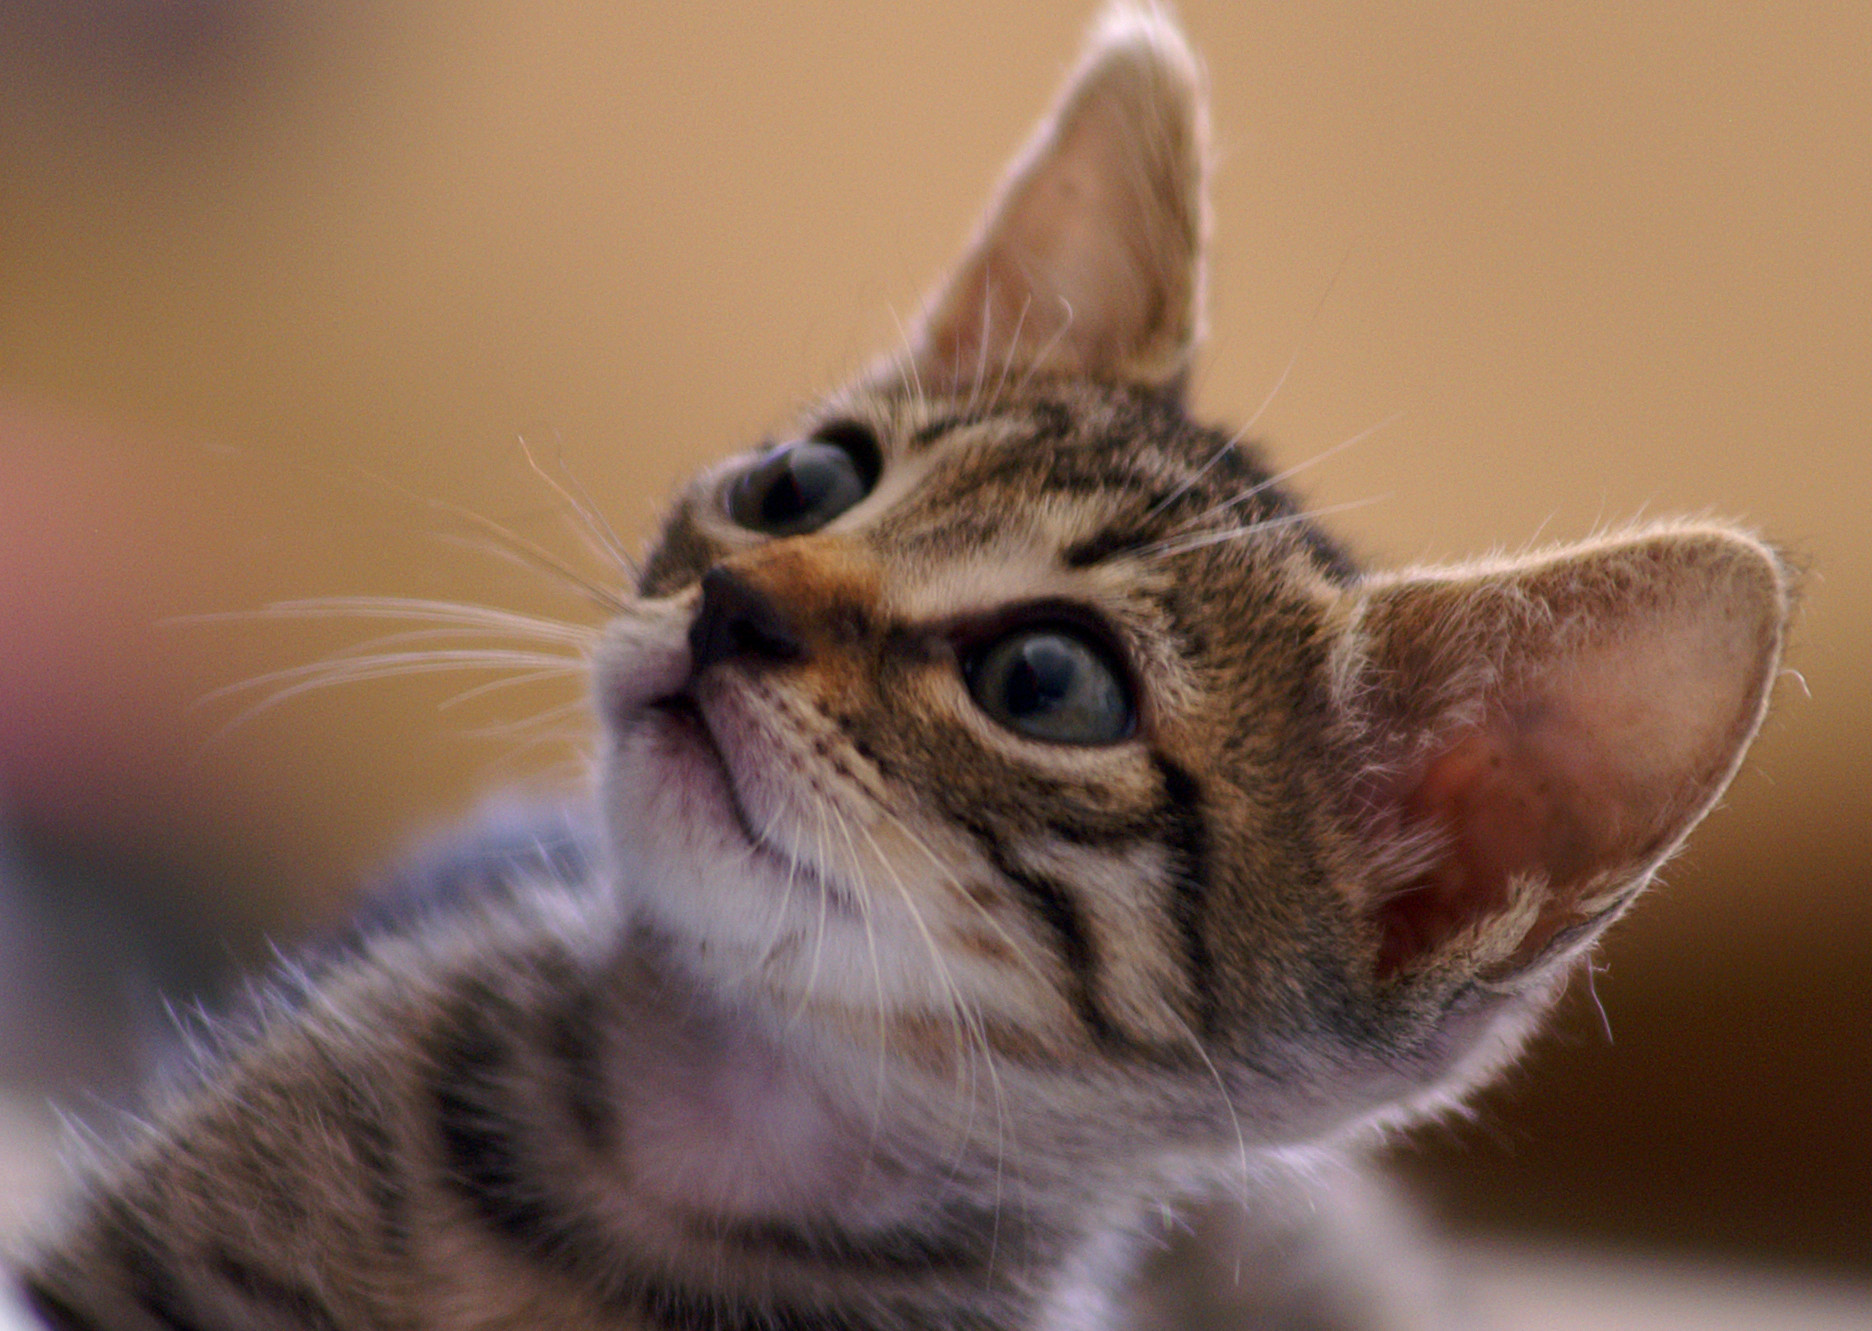 Kitten Training: Five Tips to Easily Train Your Kitten